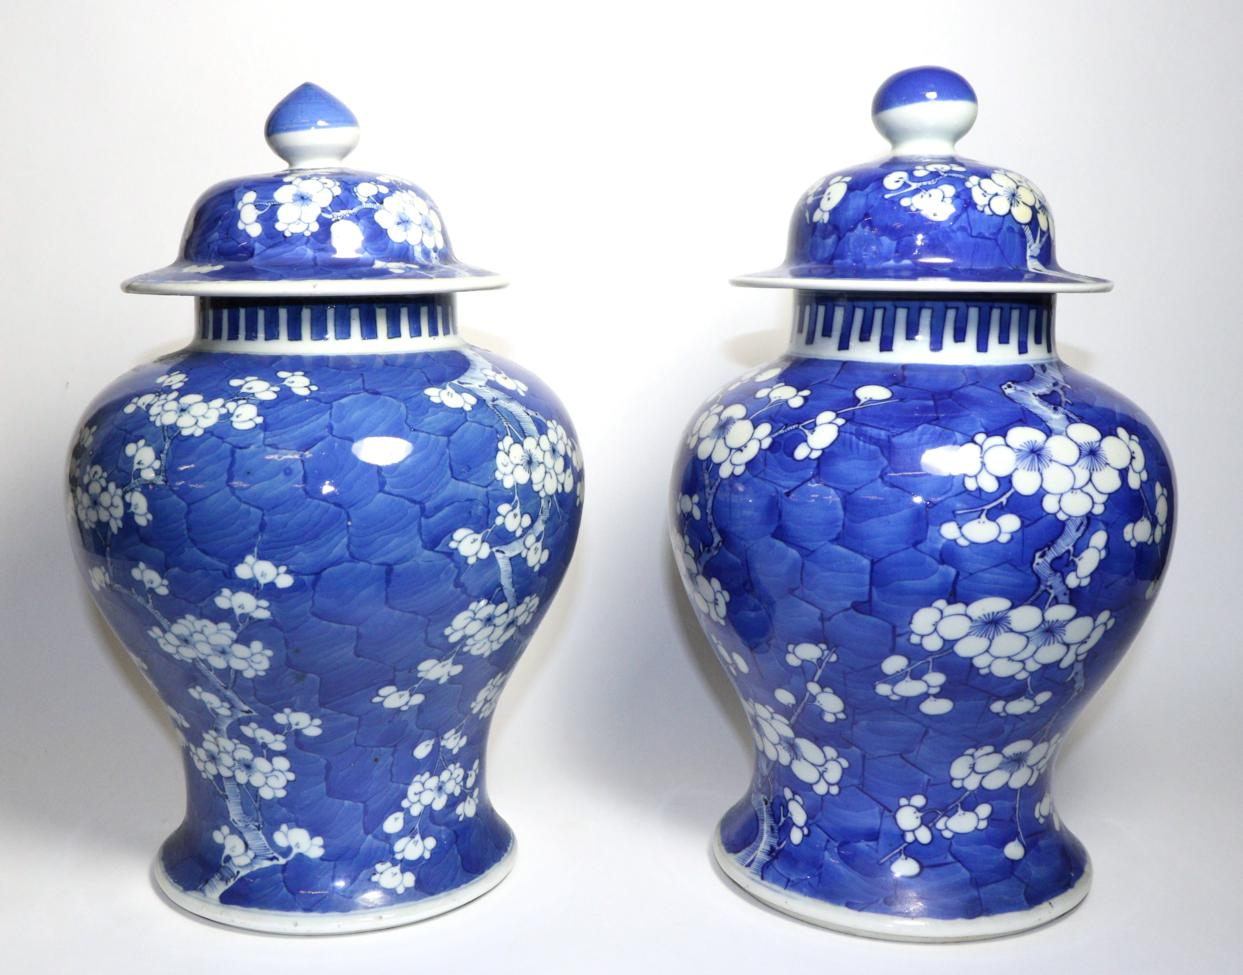 Tennants Auctioneers: A Matched Pair of Chinese Porcelain Baluster Jars and Covers